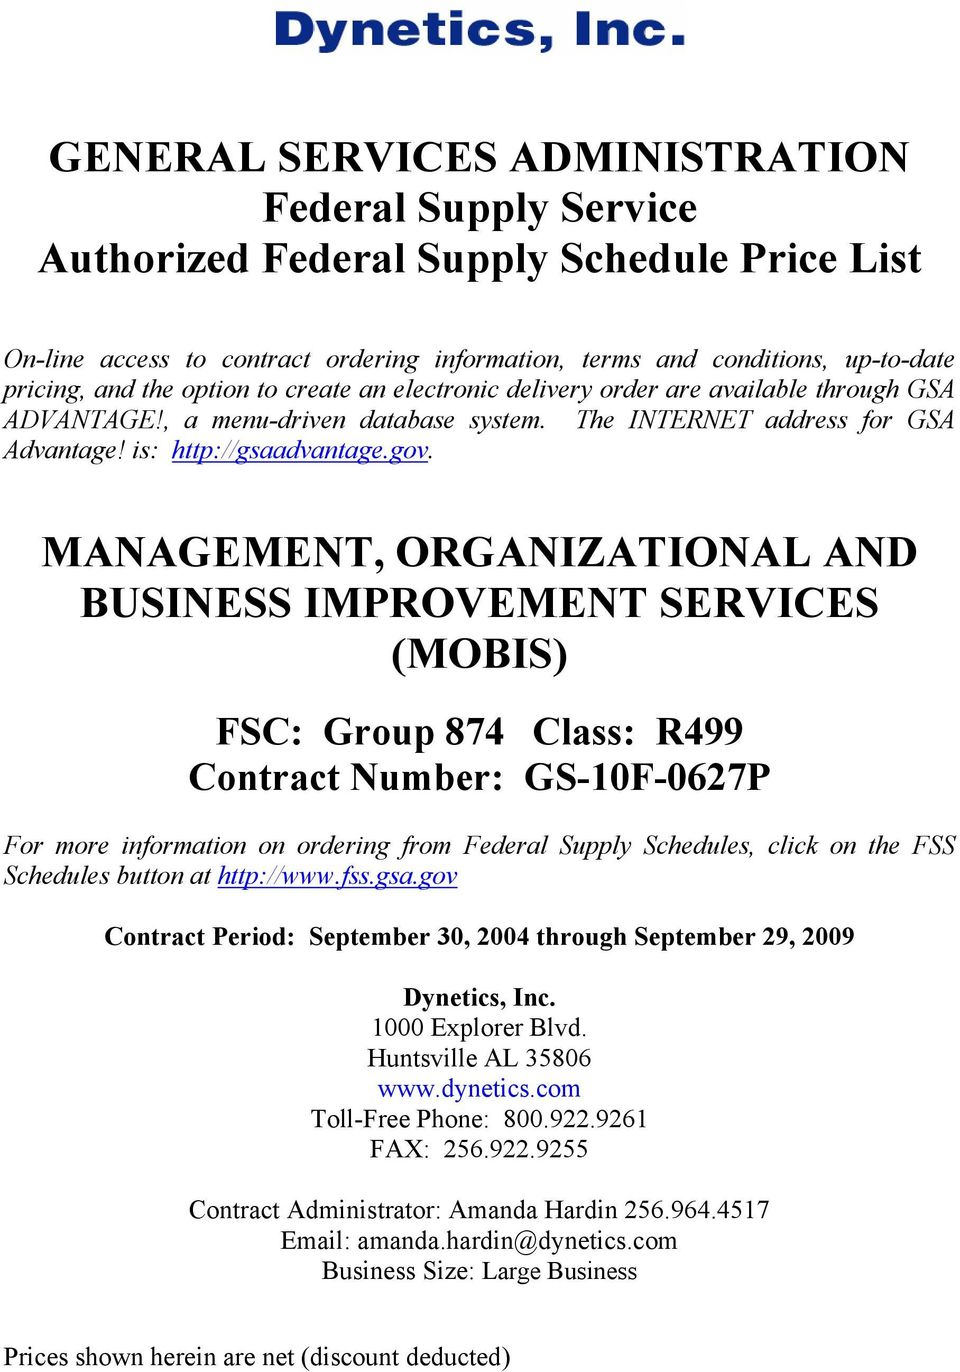 MANAGEMENT, ORGANIZATIONAL AND BUSINESS IMPROVEMENT SERVICES (MOBIS) FSC: Group 874 Class: R499 Contract Number: GS-10F-0627P For more information on ordering from Federal Supply Schedules, click on